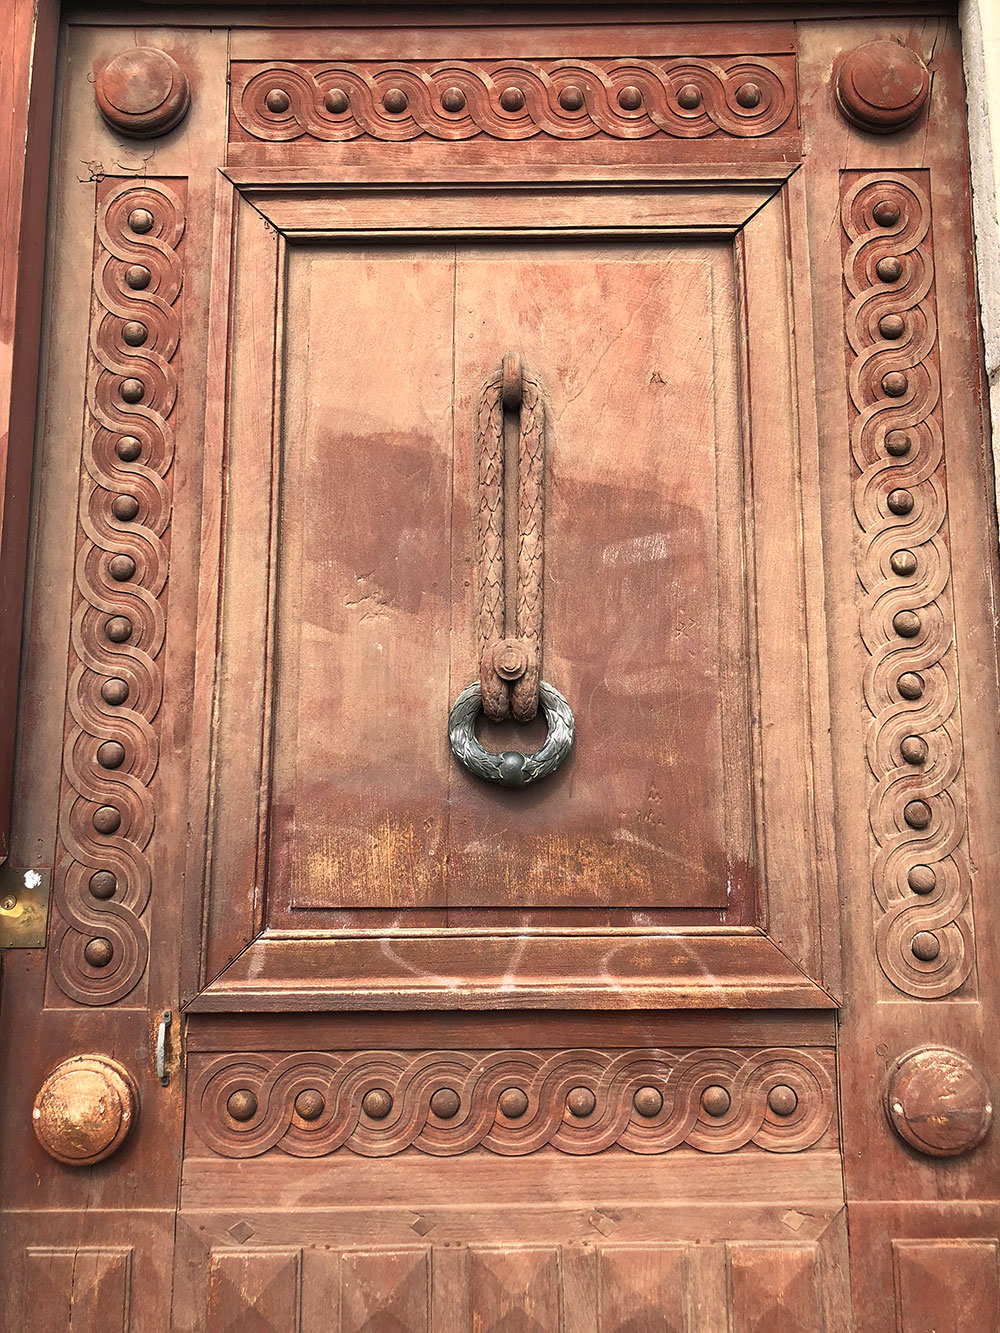 This ornately carved front door was keeping Kemet safe from the traffic